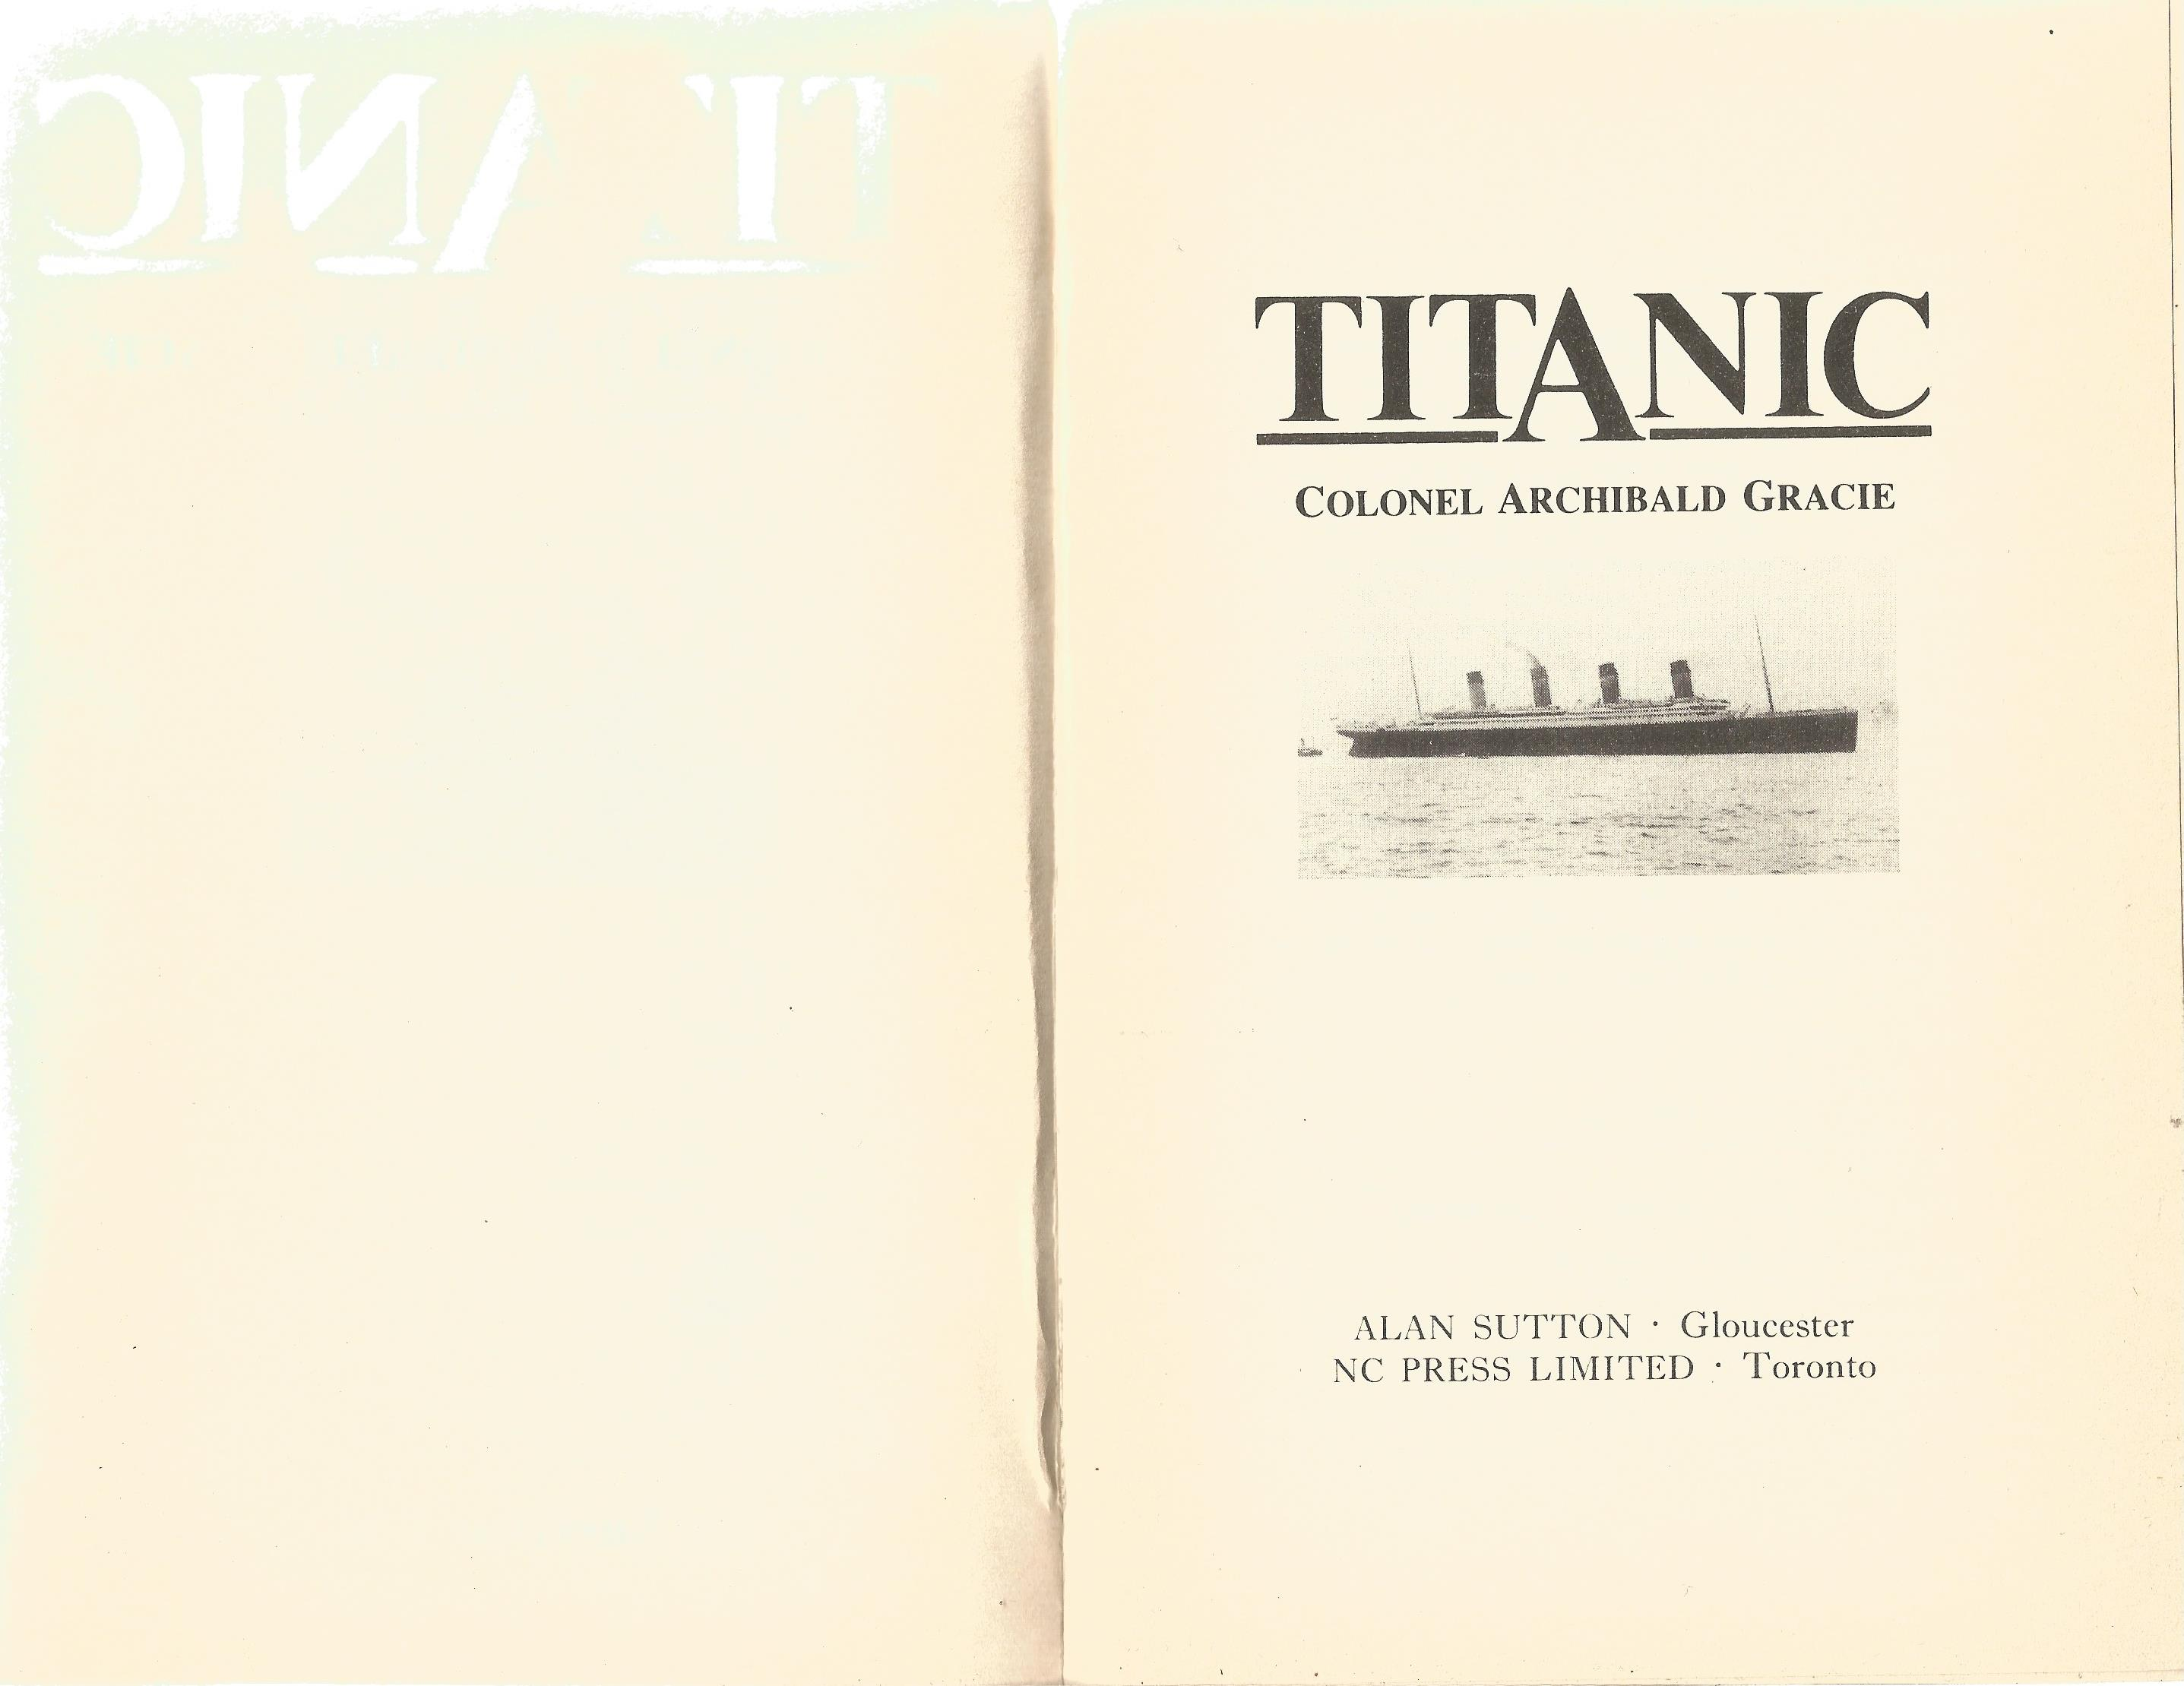 Titanic unsigned softback book by Col Archibald Gracie in good condition. 1986 Canadian Edition. - Image 2 of 2